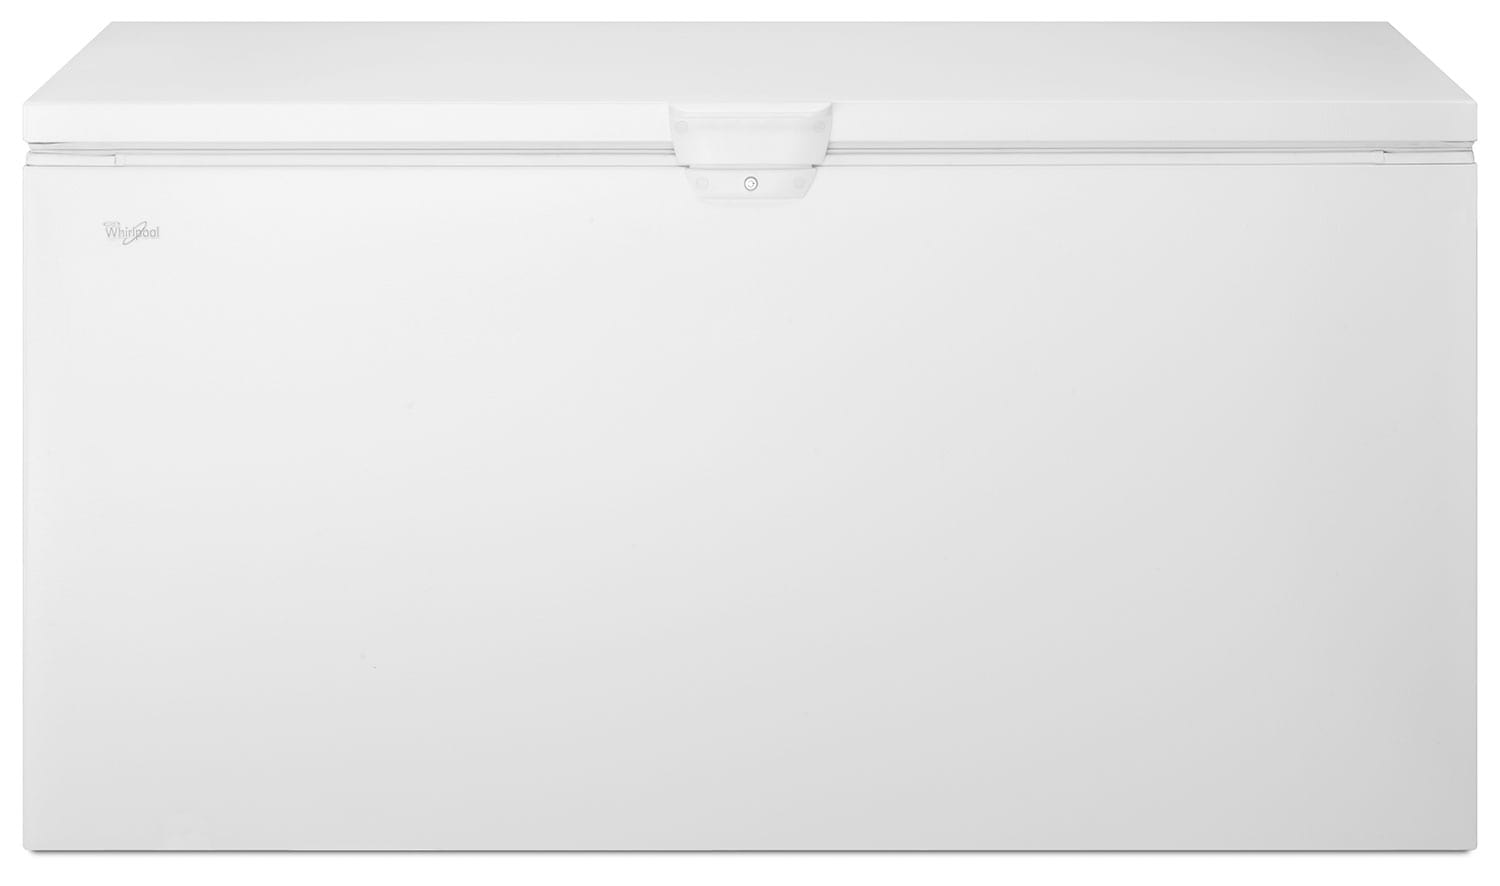 Whirpool White Chest Freezer (21.7 Cu. Ft.) - WZC3122DW